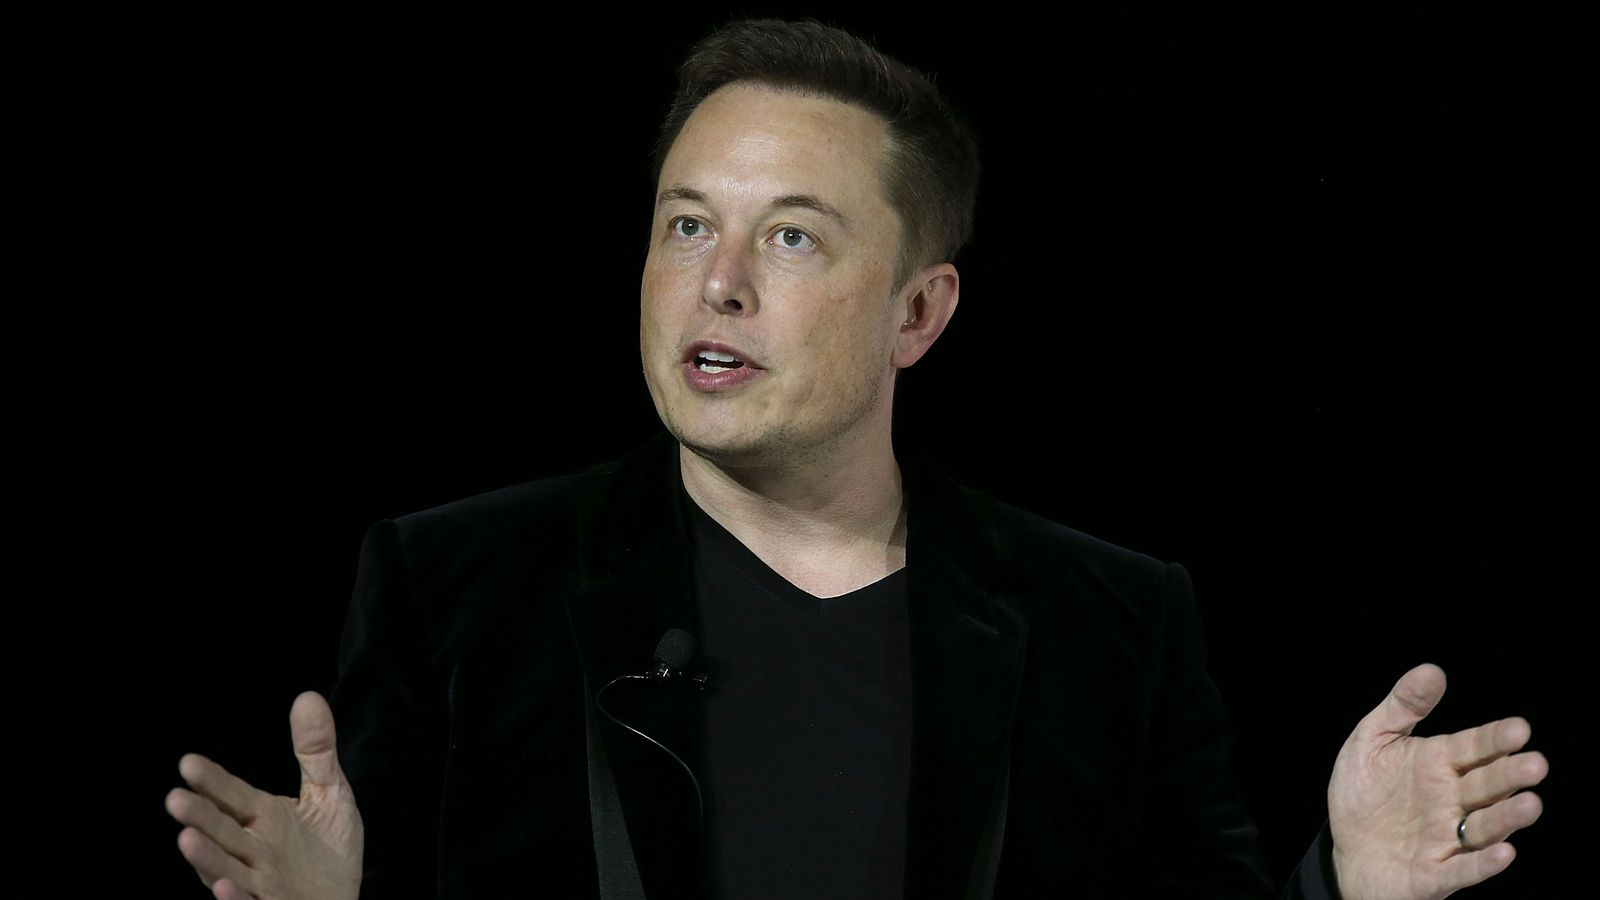 theverge.com - Elon Musk launches Neuralink, a venture to merge the human brain with AI